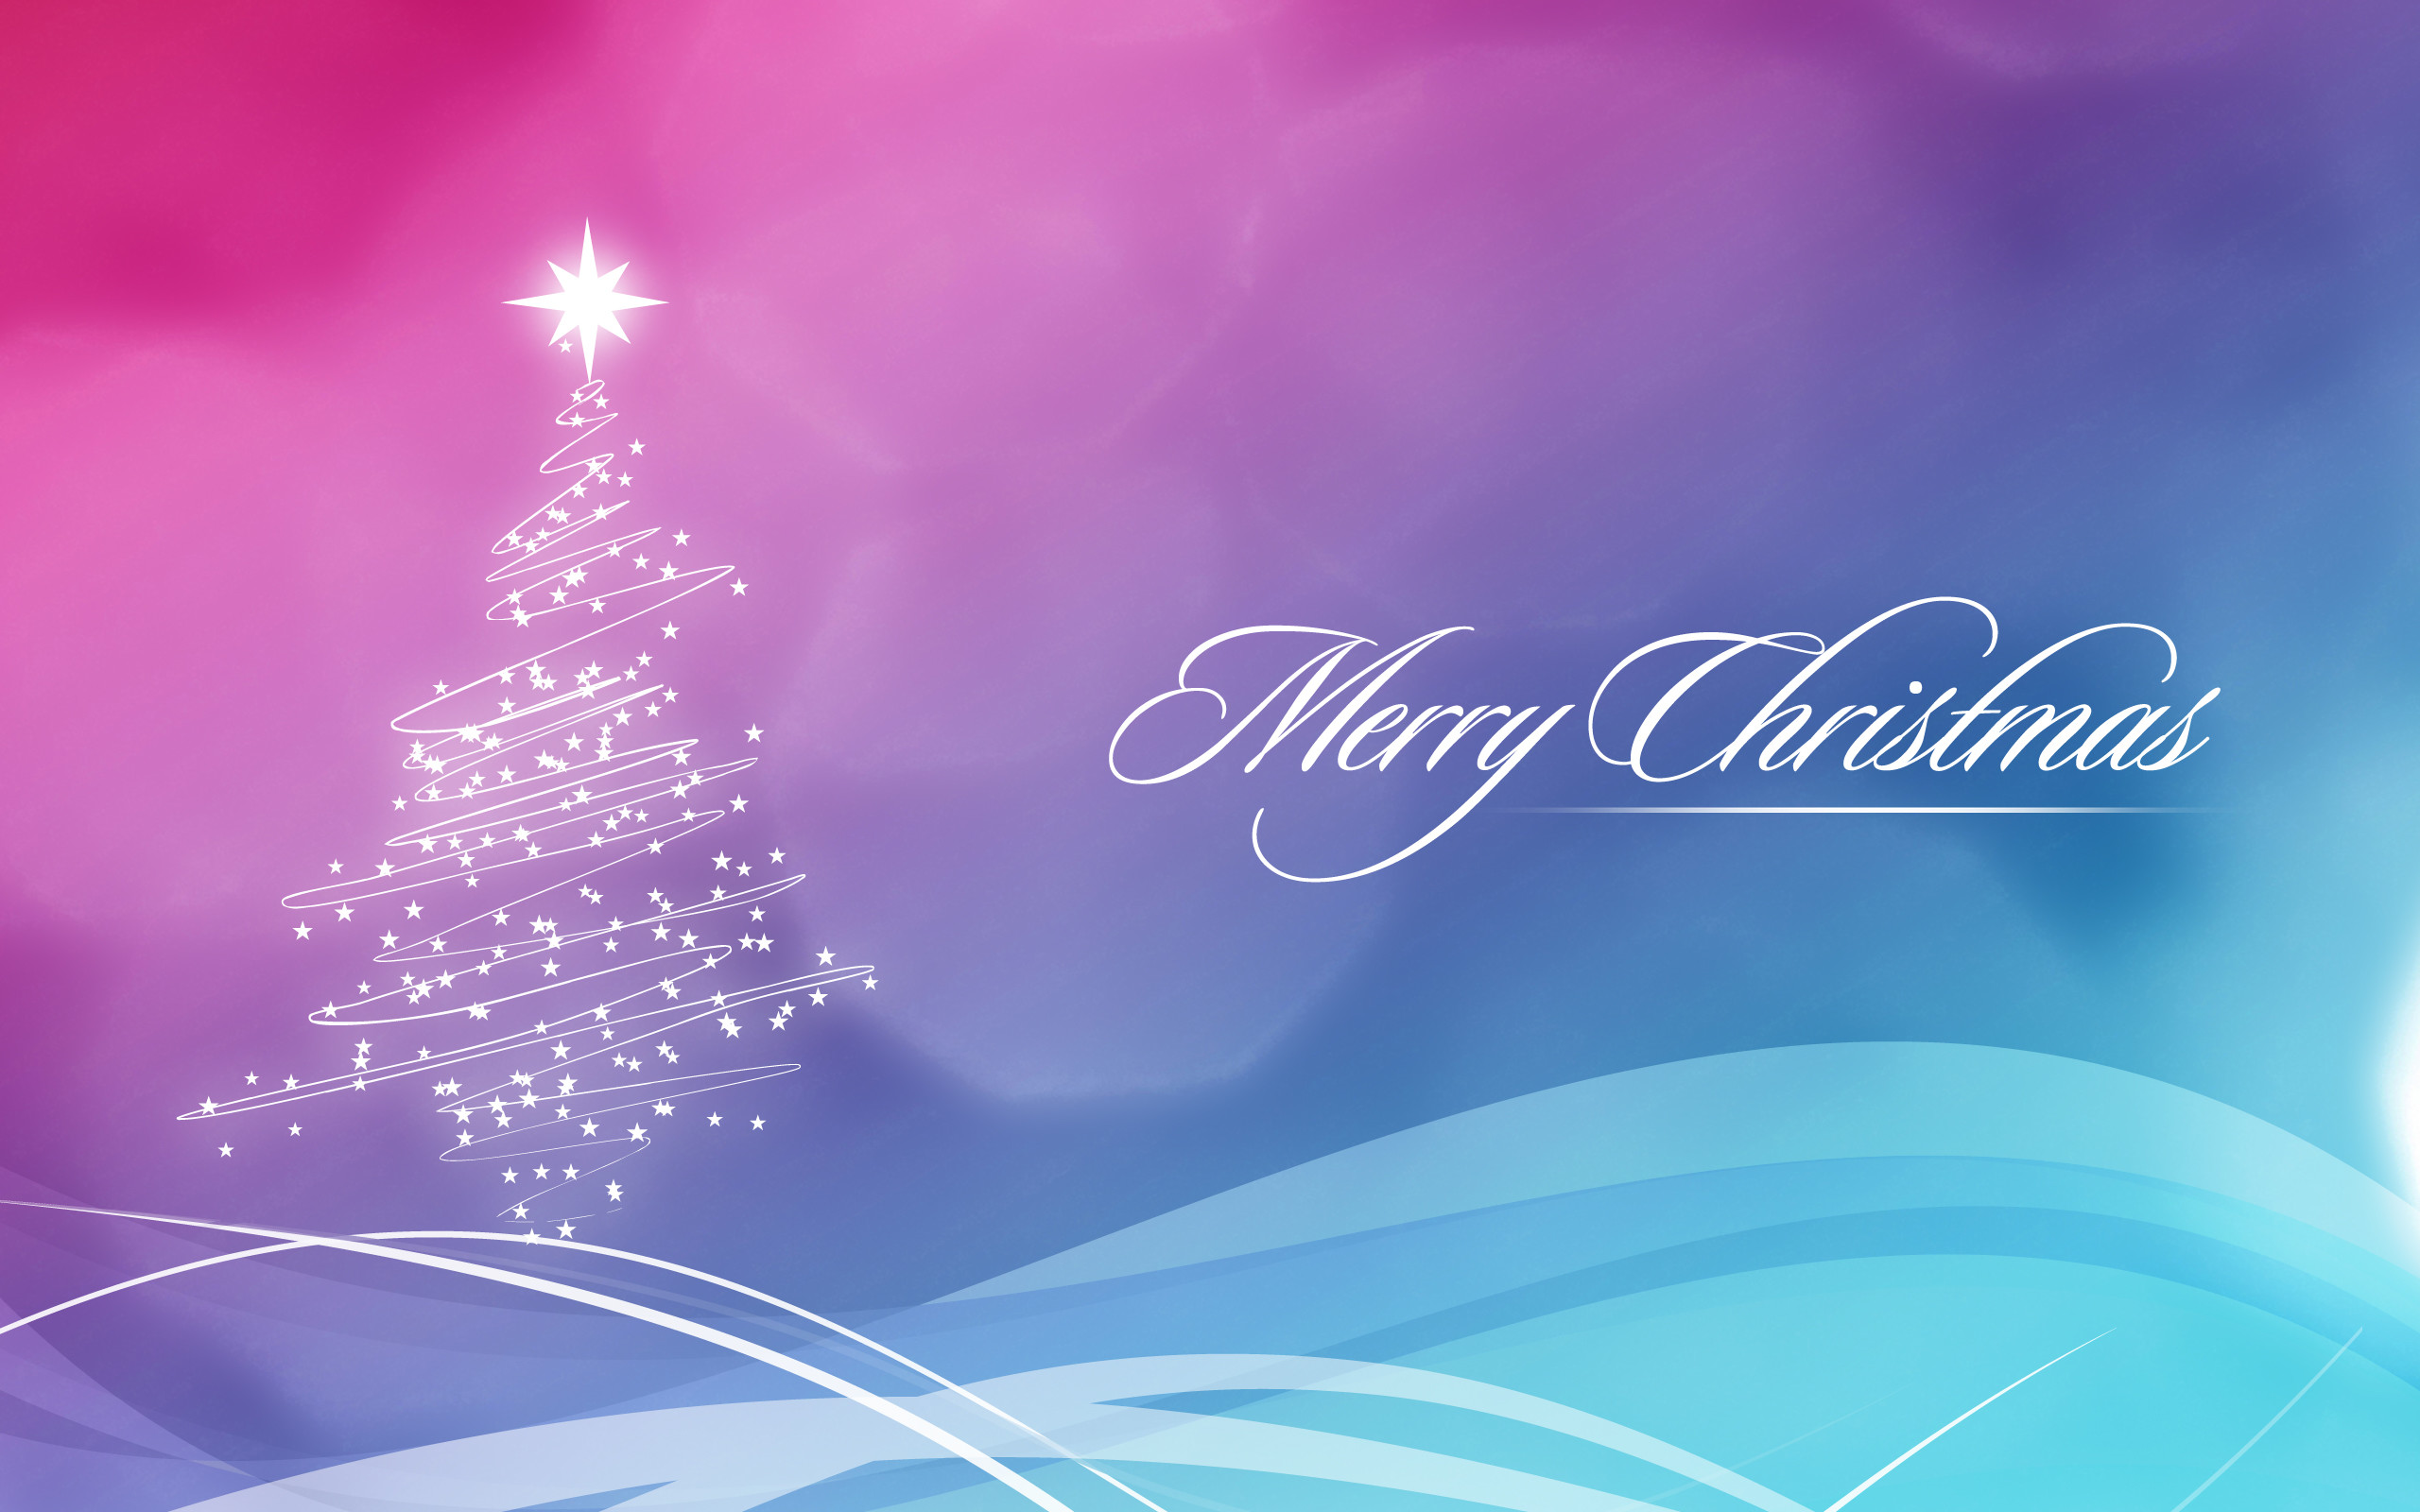 2560x1600 Blue and Pink Christmas Wallpaper wallpapers and stock photos